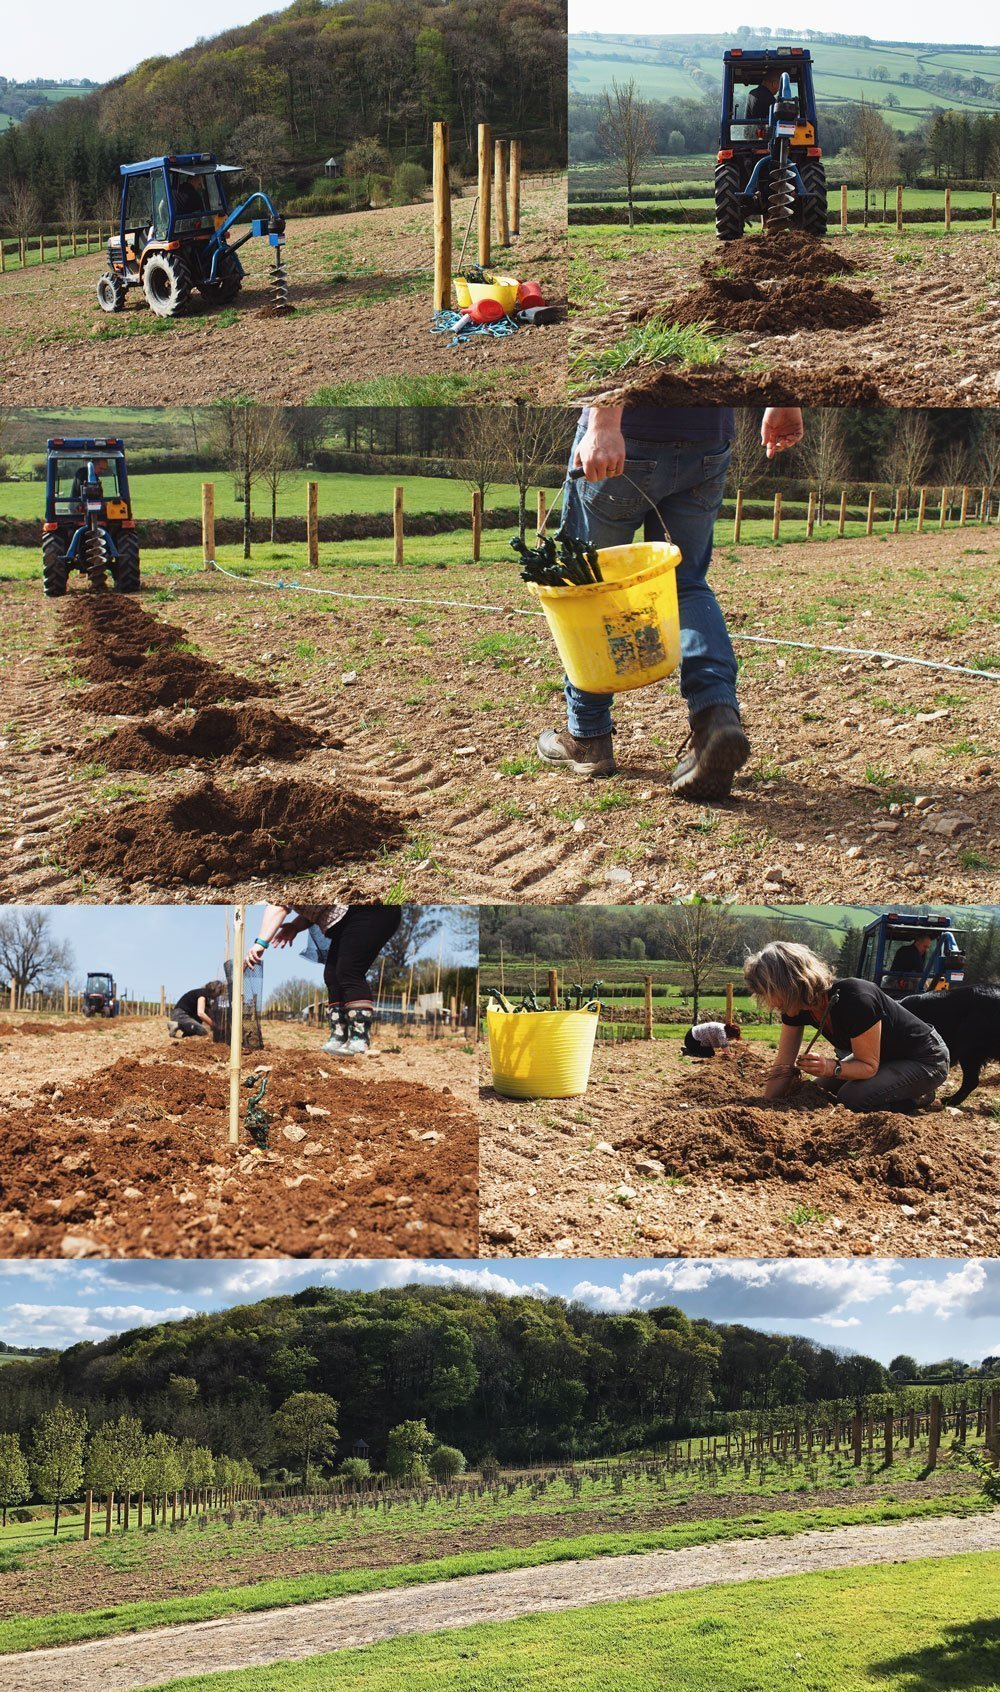 seyval blanc English sparkling wine planting in pictures